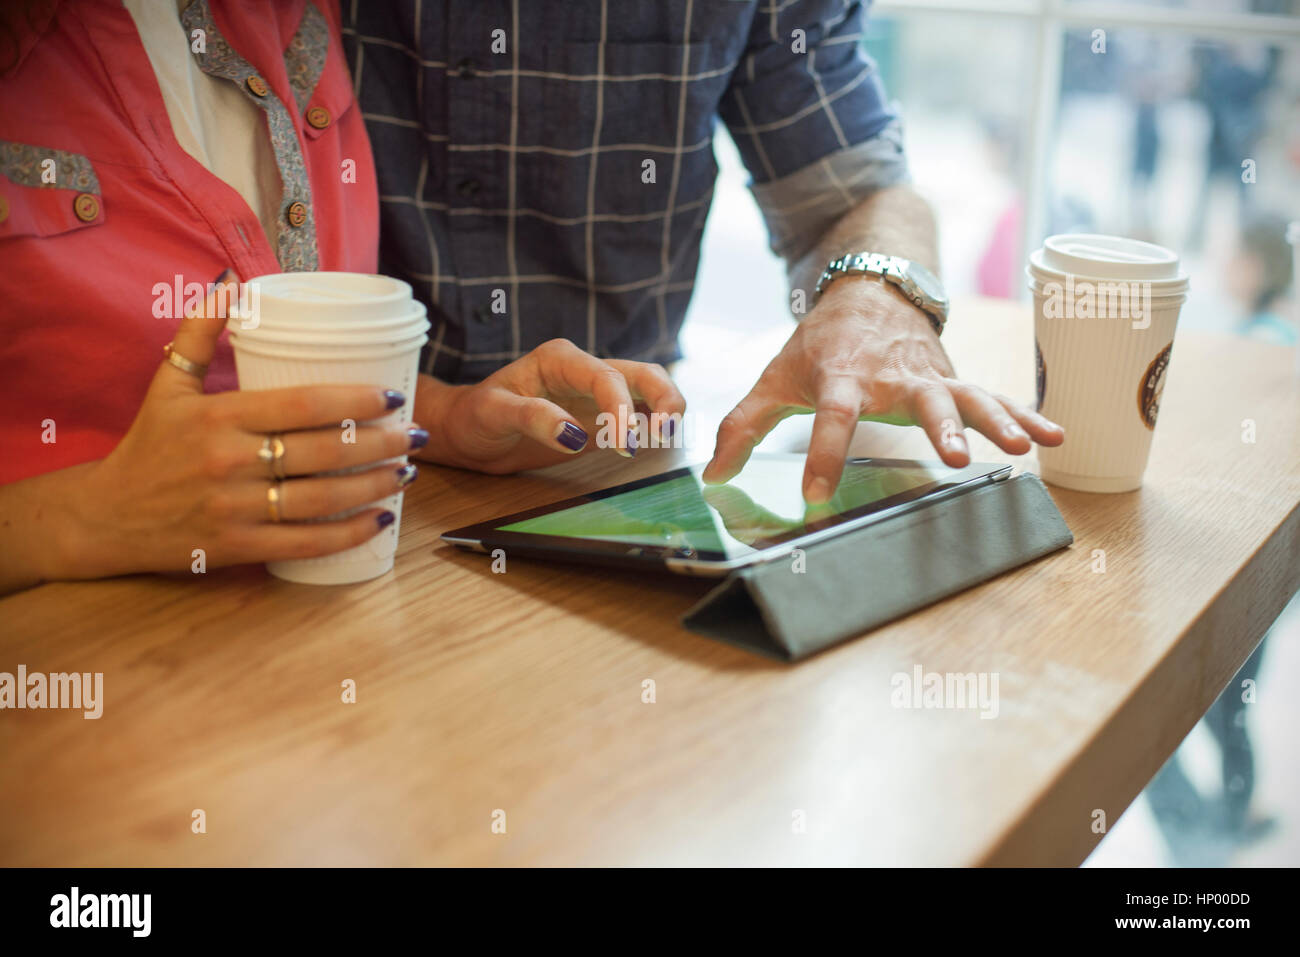 Paar mit digital-Tablette in Coffee-Shop, beschnitten Stockbild